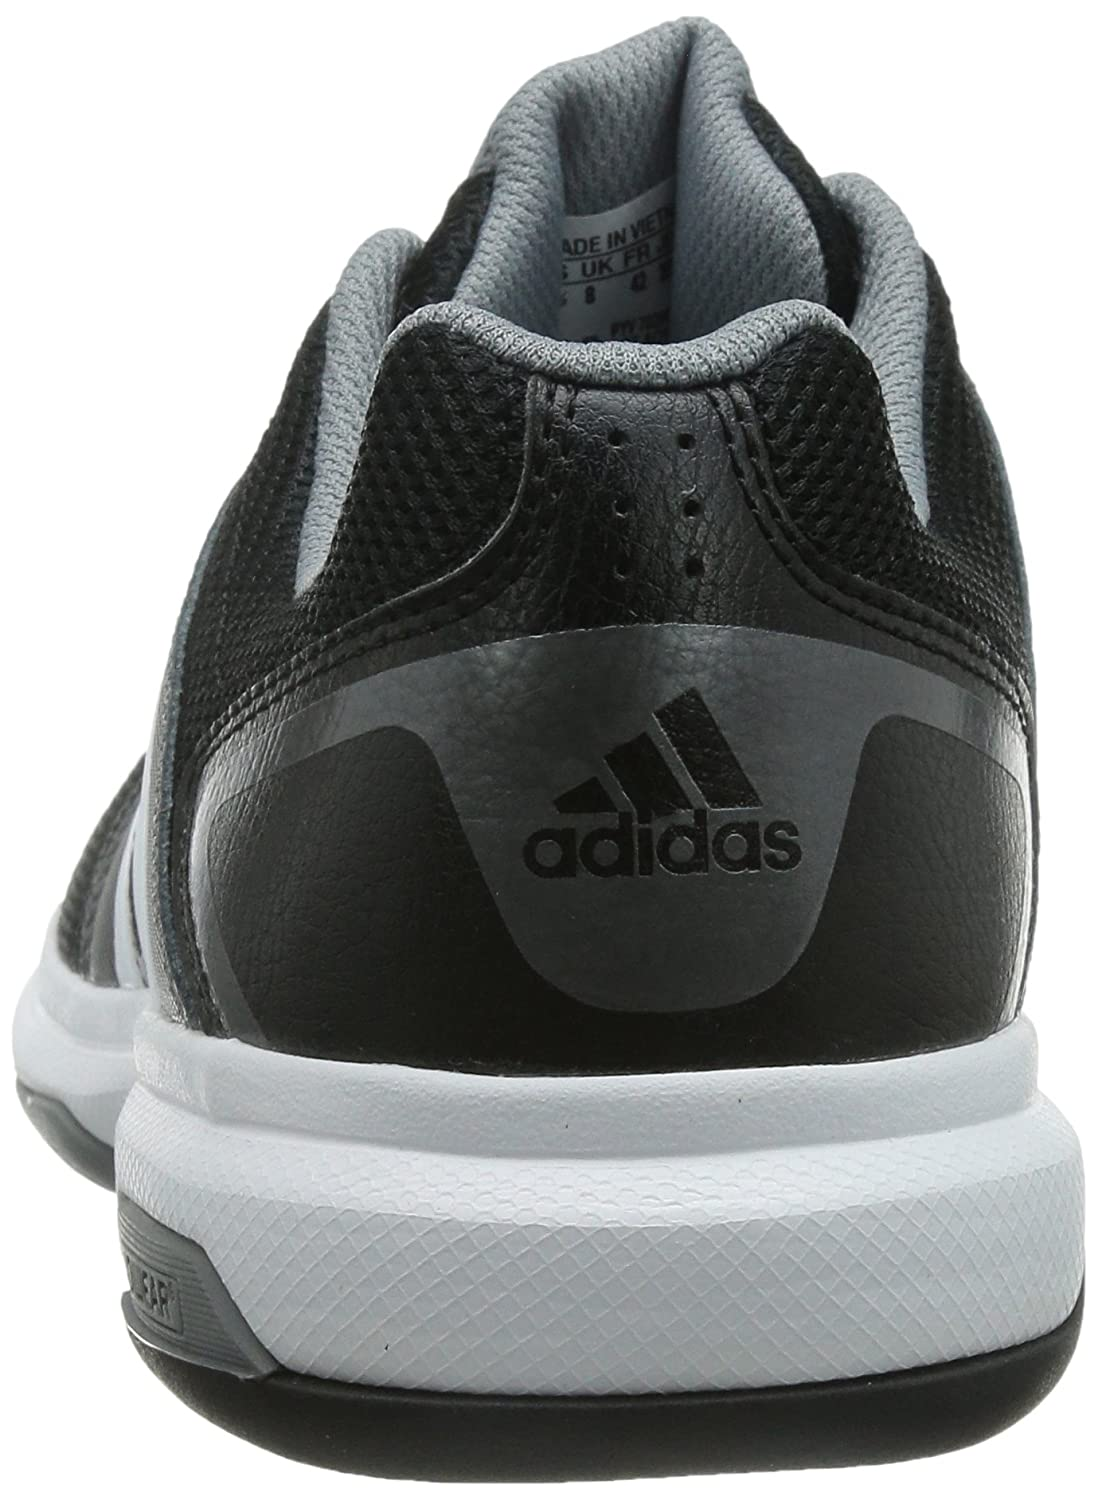 competitive price 8ca61 06235 adidas - Barricade Approach - Derby Homme, Marron (Core BlackFTWR WhiteNight  Met. F13), 41 Amazon.fr Chaussures et Sacs